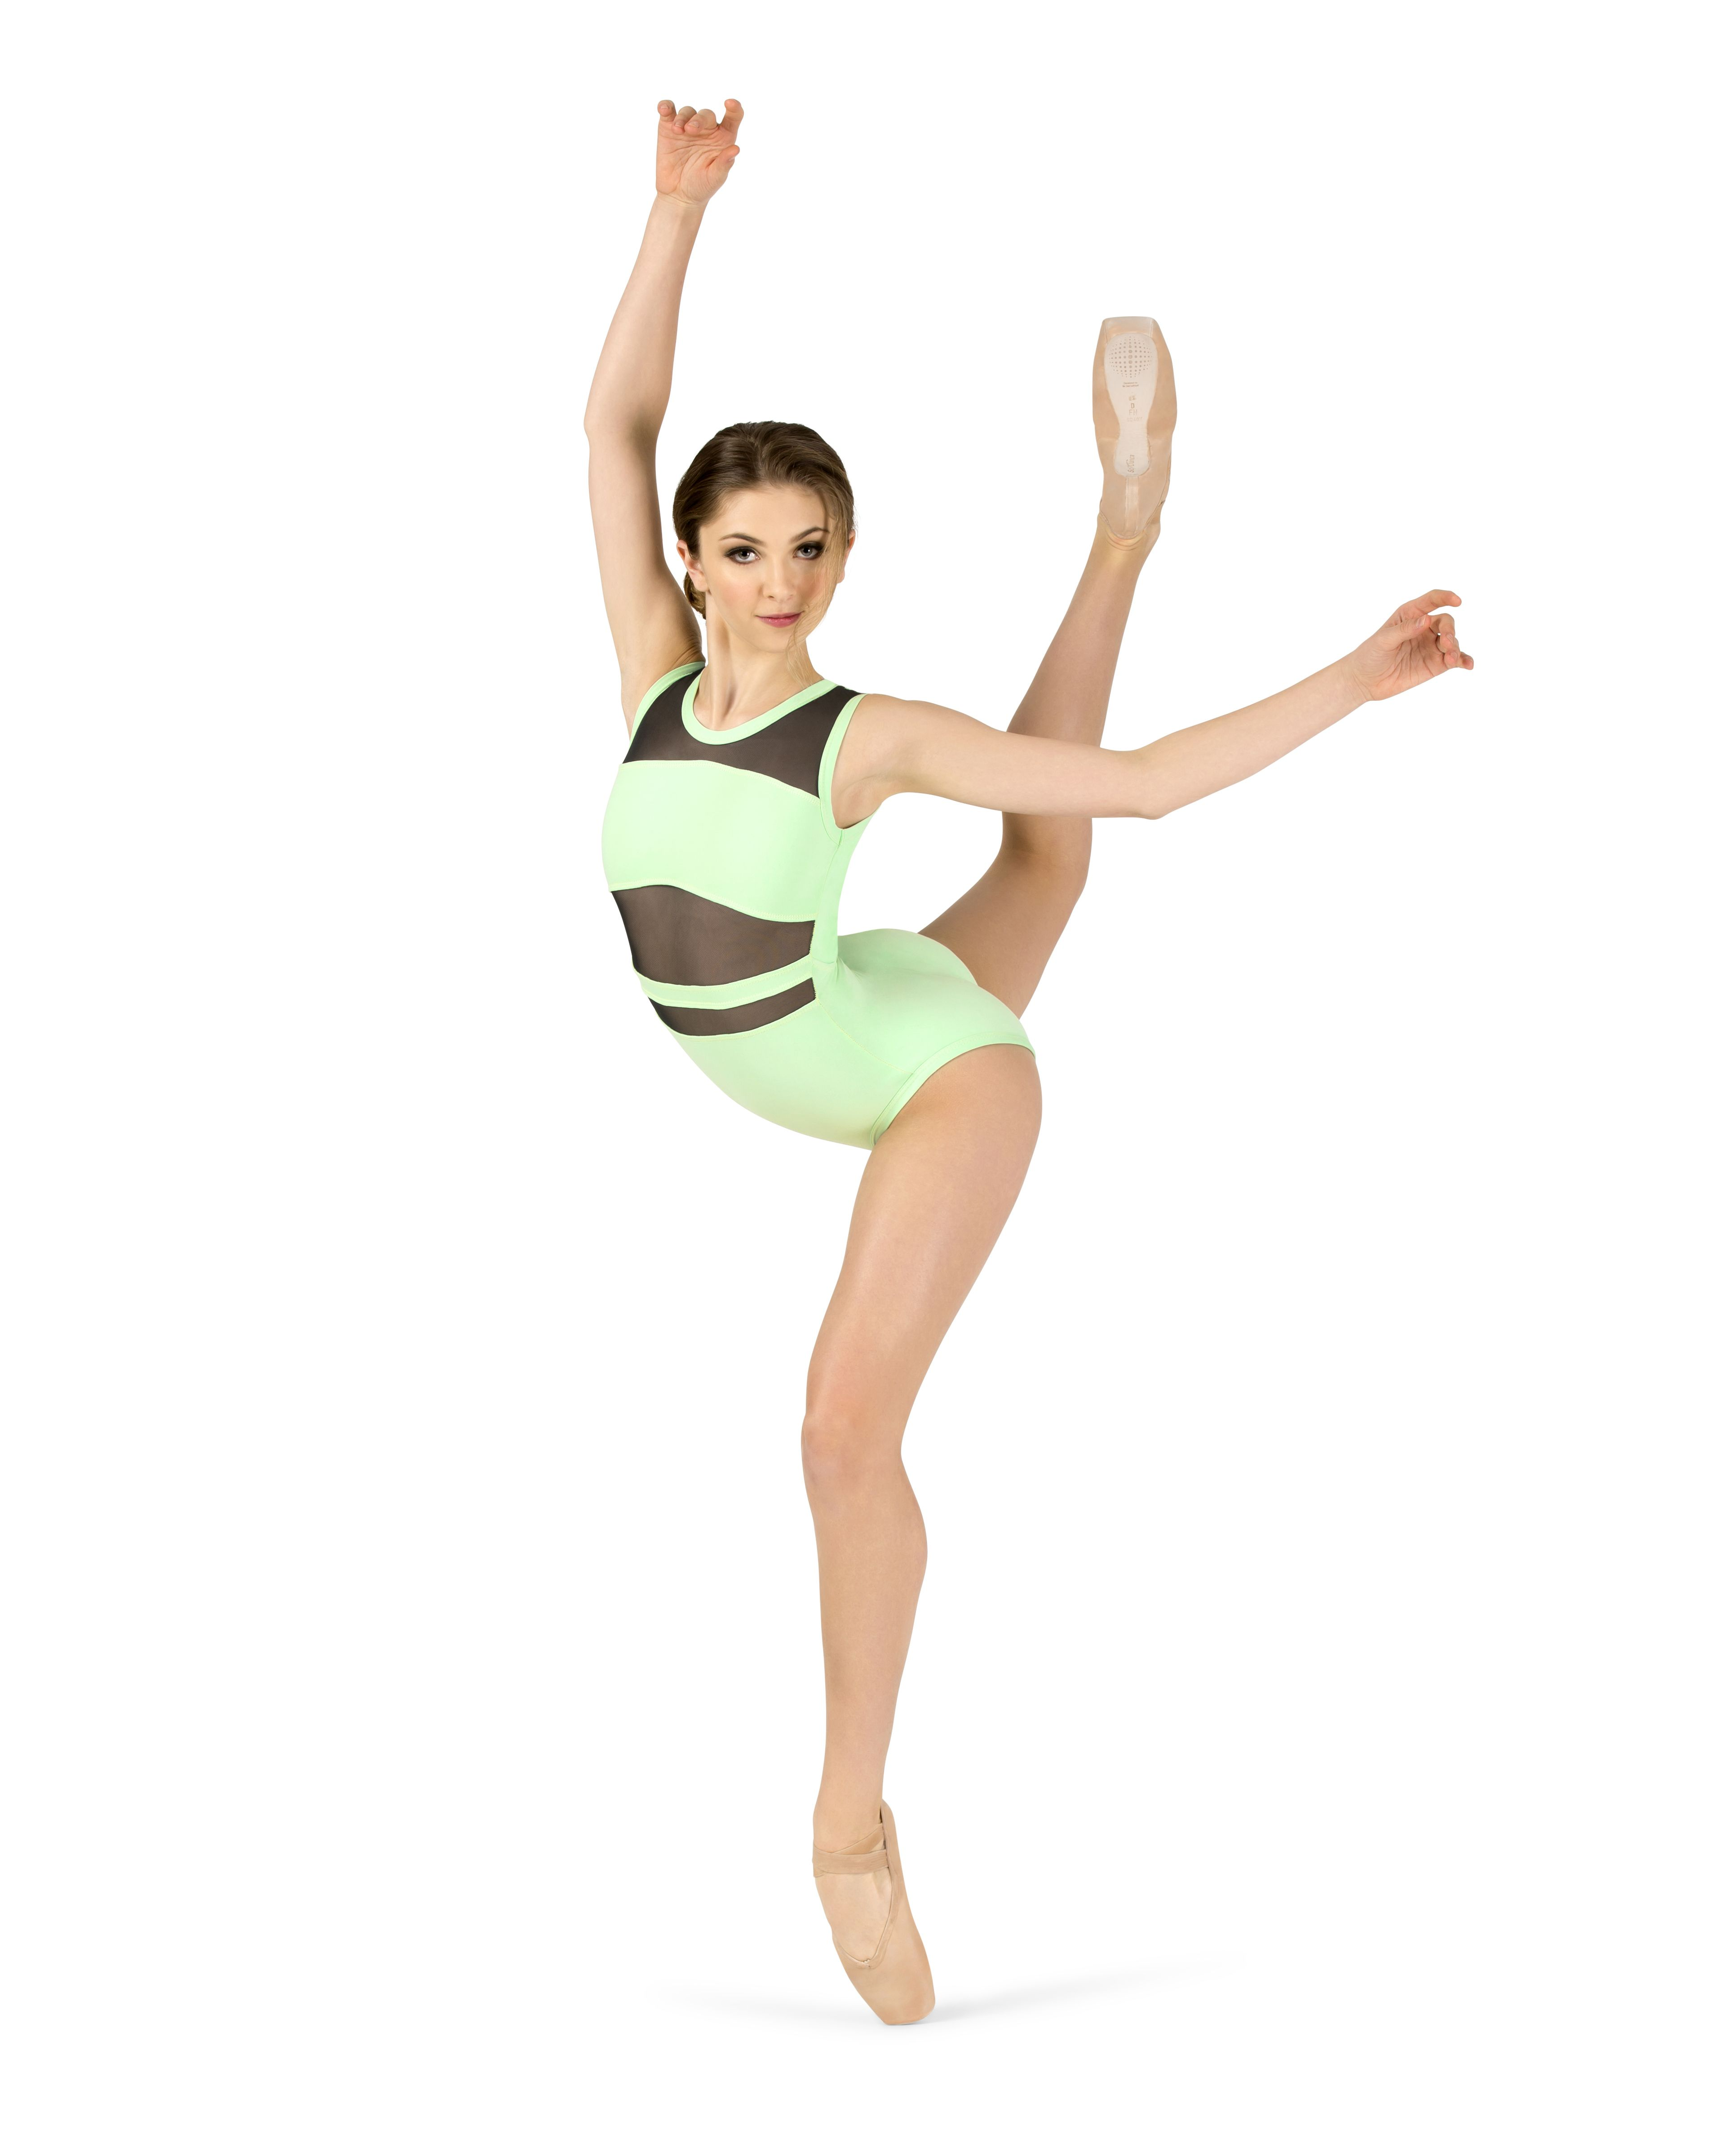 696507d0e5 Experience high-quality workmanship with beautifully detailed and  constructed Ella leotards. Leotard features tank